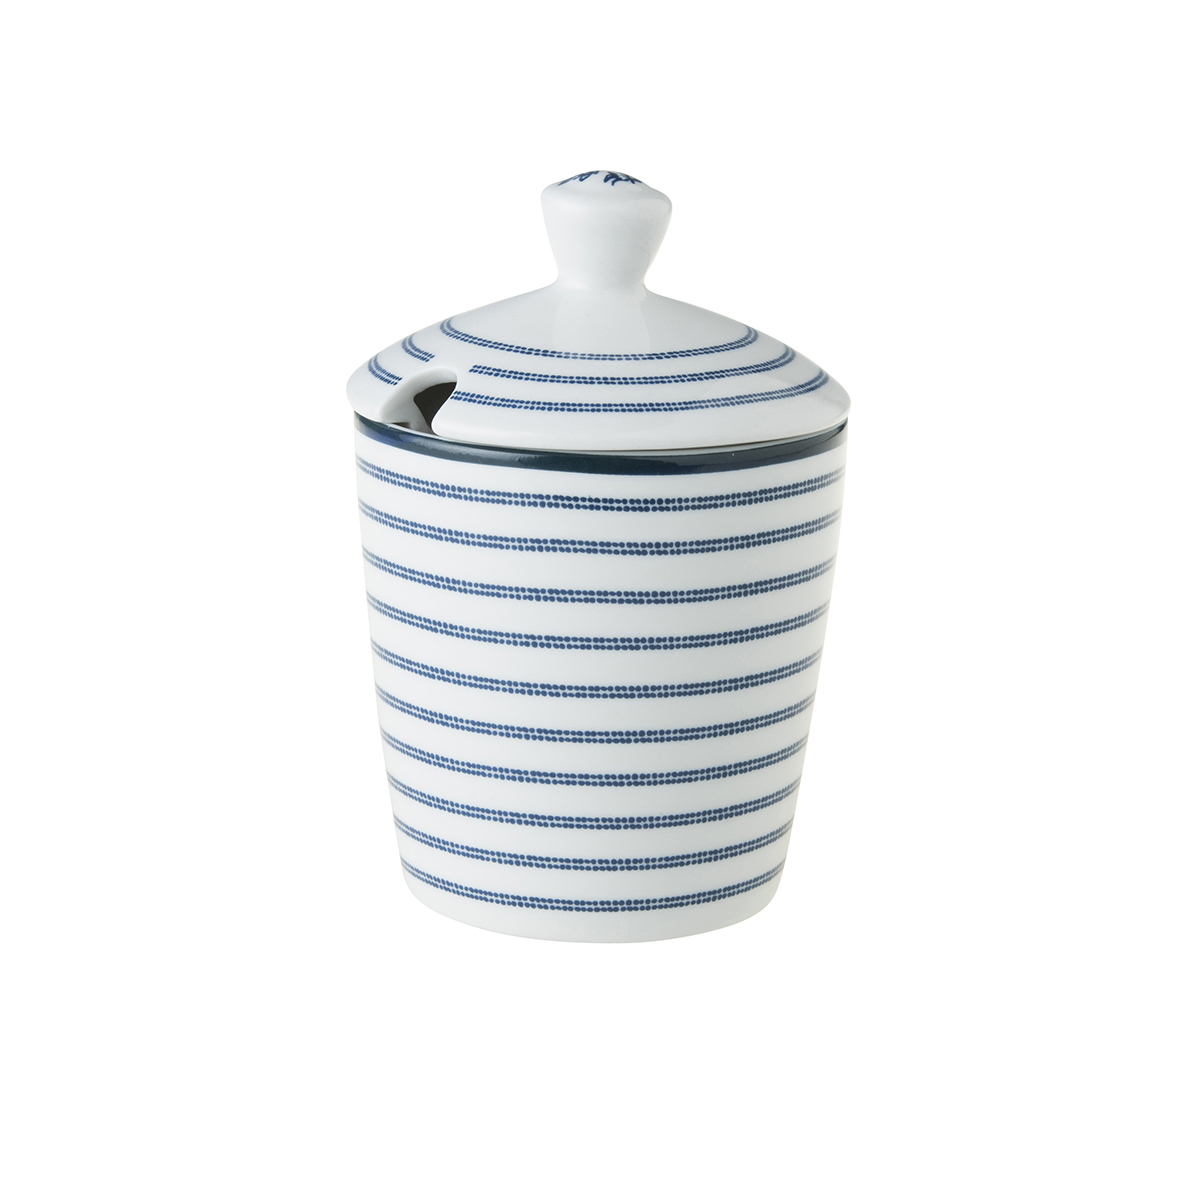 CANDY STRIPE SUGAR BOWL